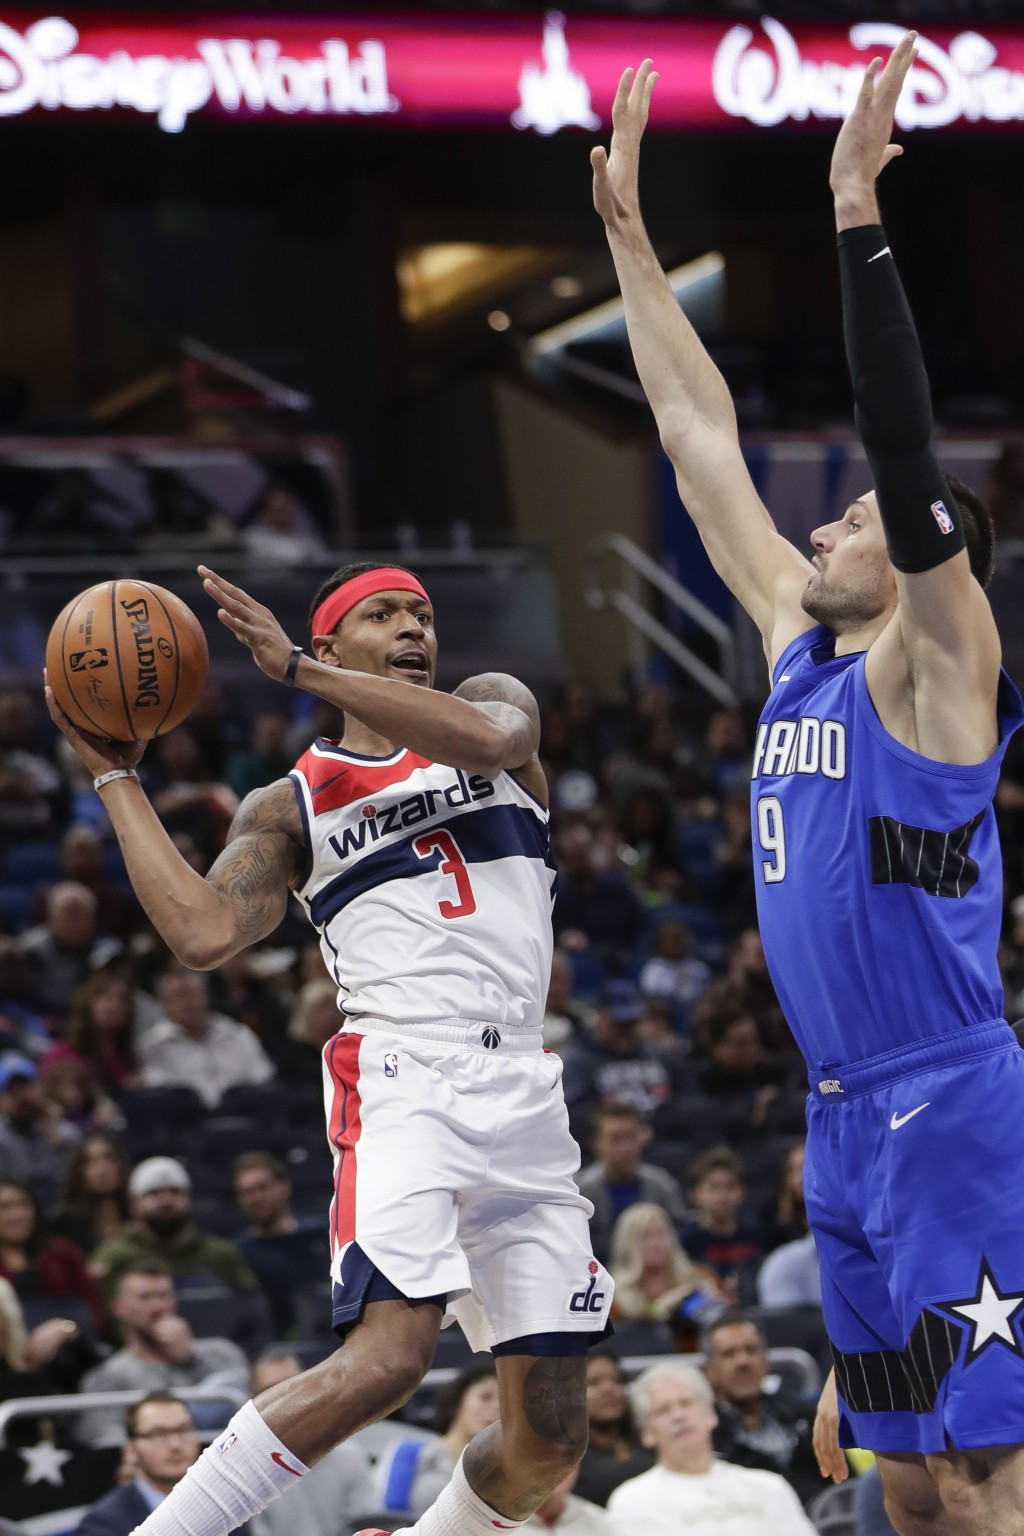 Washington Wizards' Bradley Beal (3) passes the ball around Orlando Magic's Nikola Vucevic (9) during the first half of an NBA basketball game, Sunday...